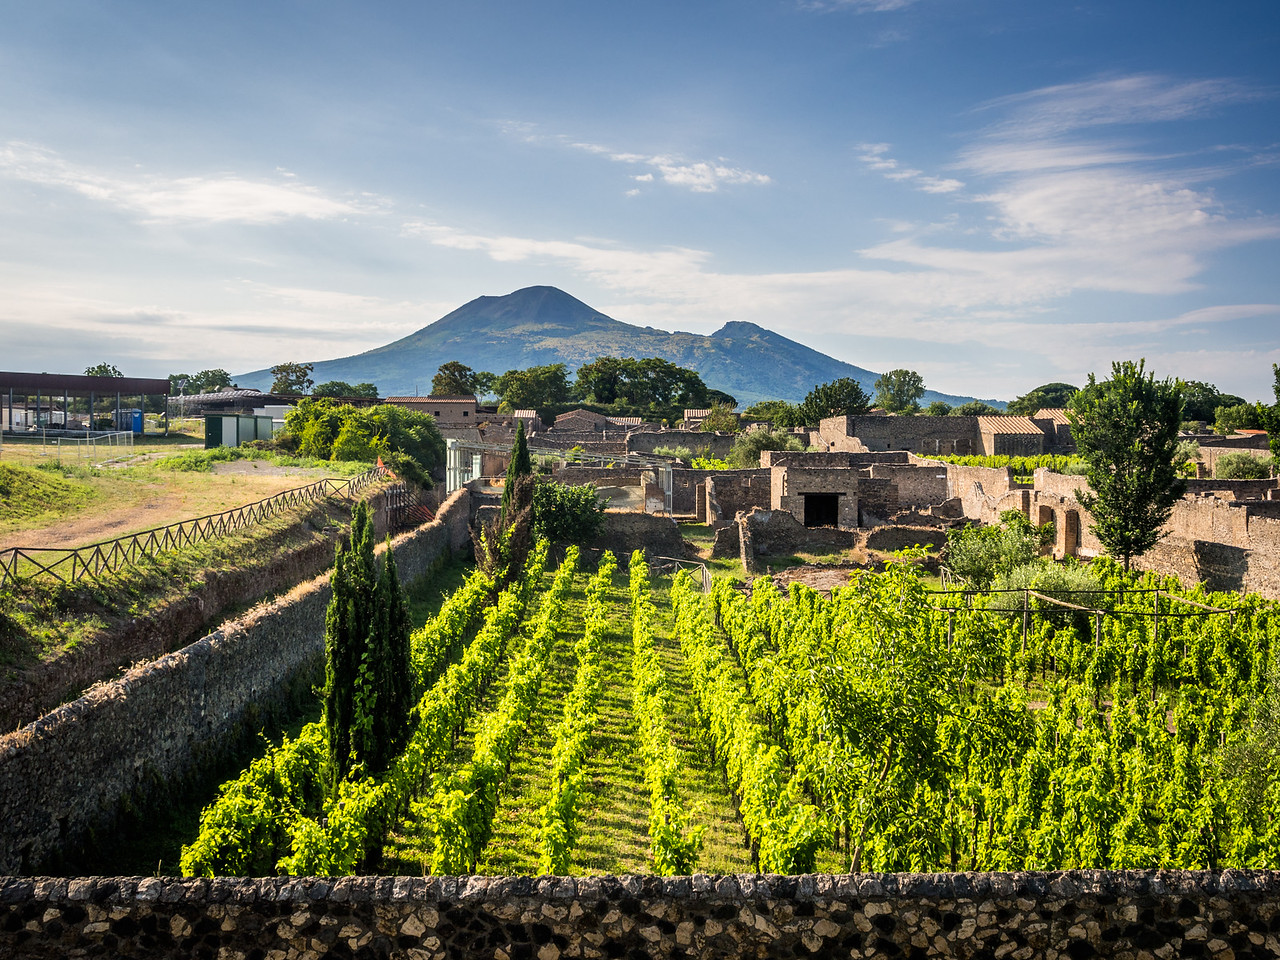 Vesuvius and the Vineyards, Pompeii, Italy